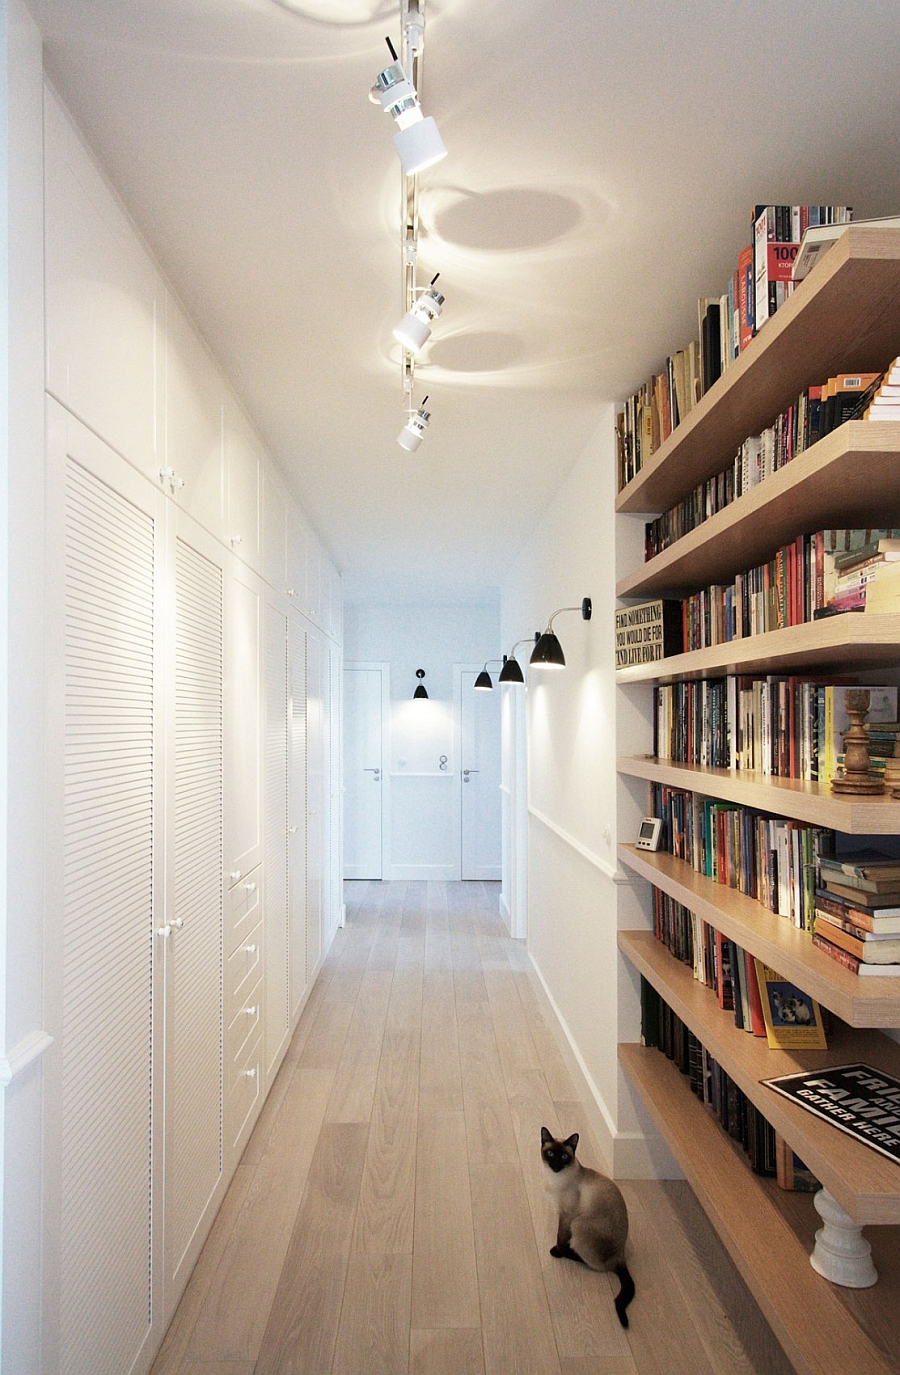 Scandinavian  style Interior that is clad in white